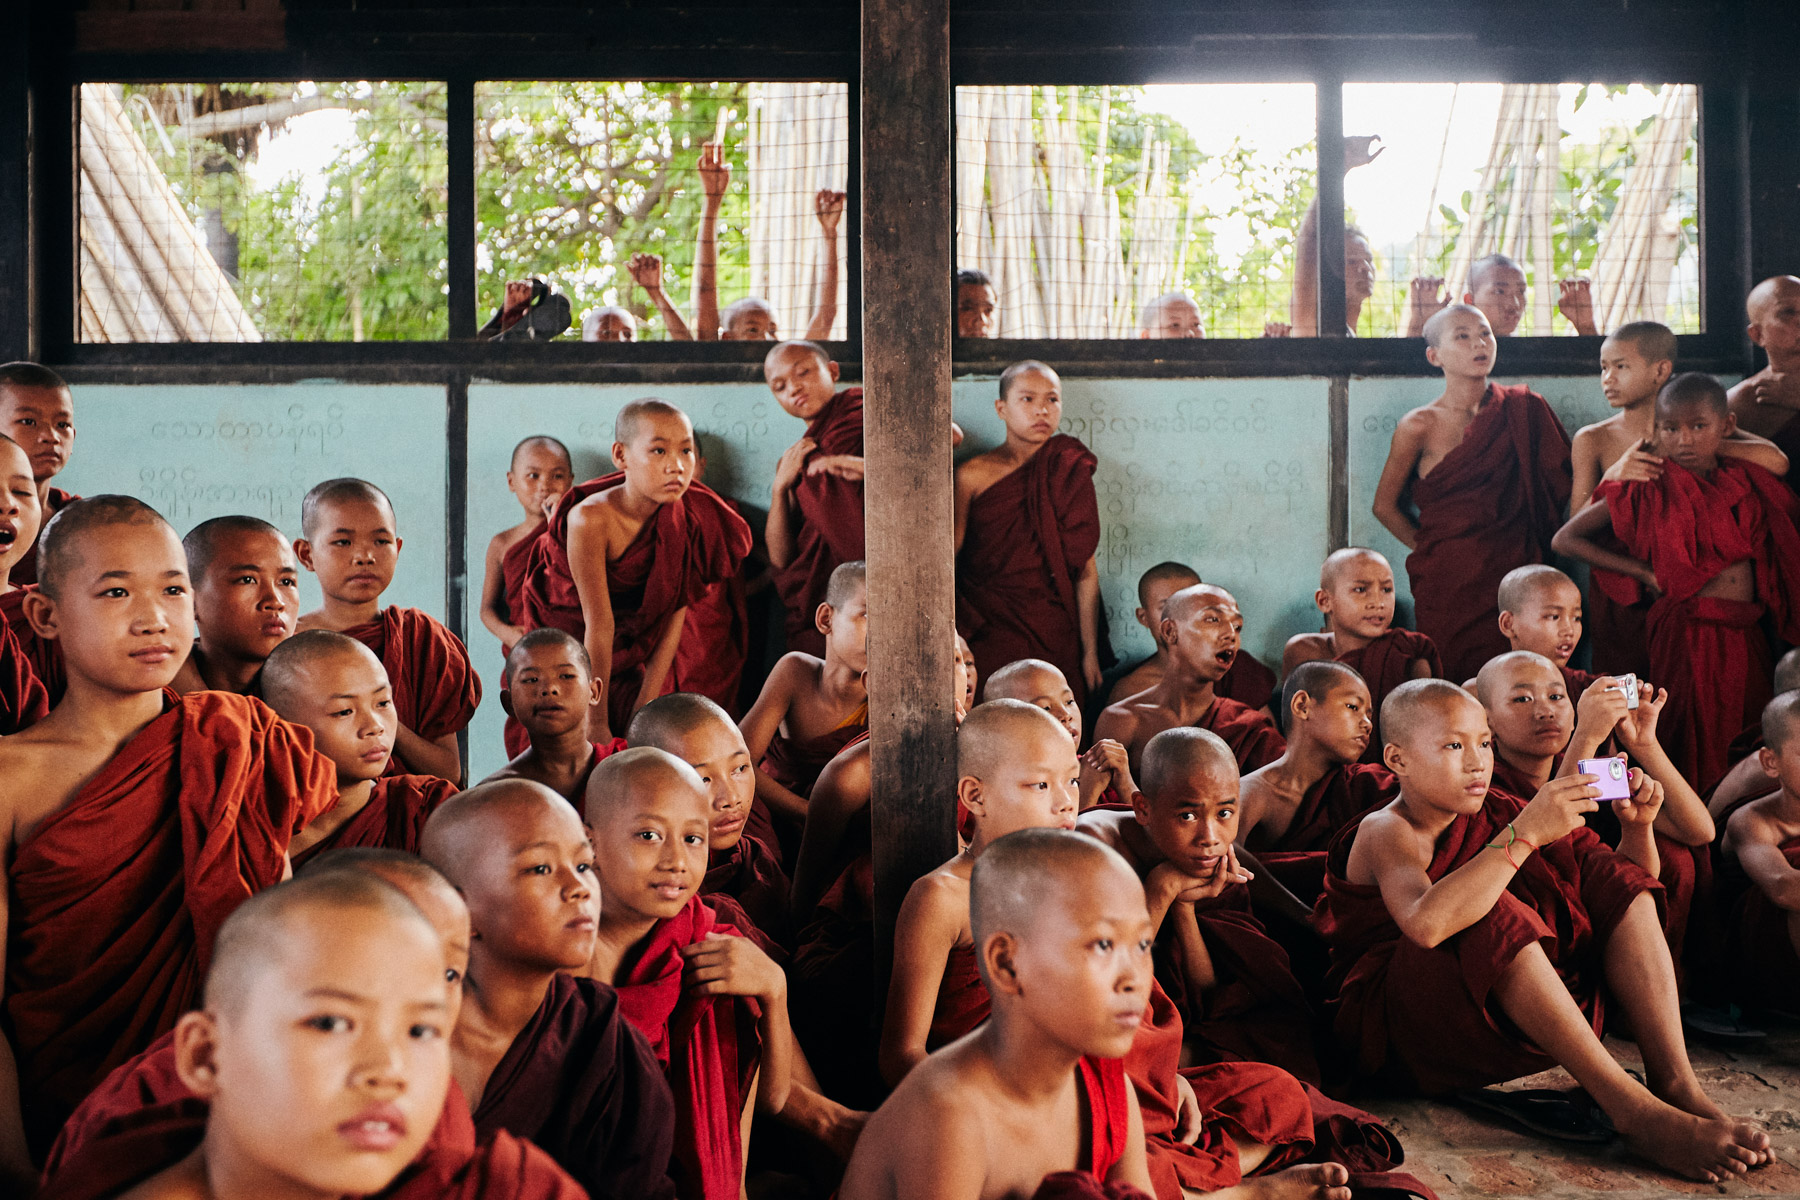 A group of novice Burmese monks watch a performance in a small town outside of Mandalay, Myanmar.